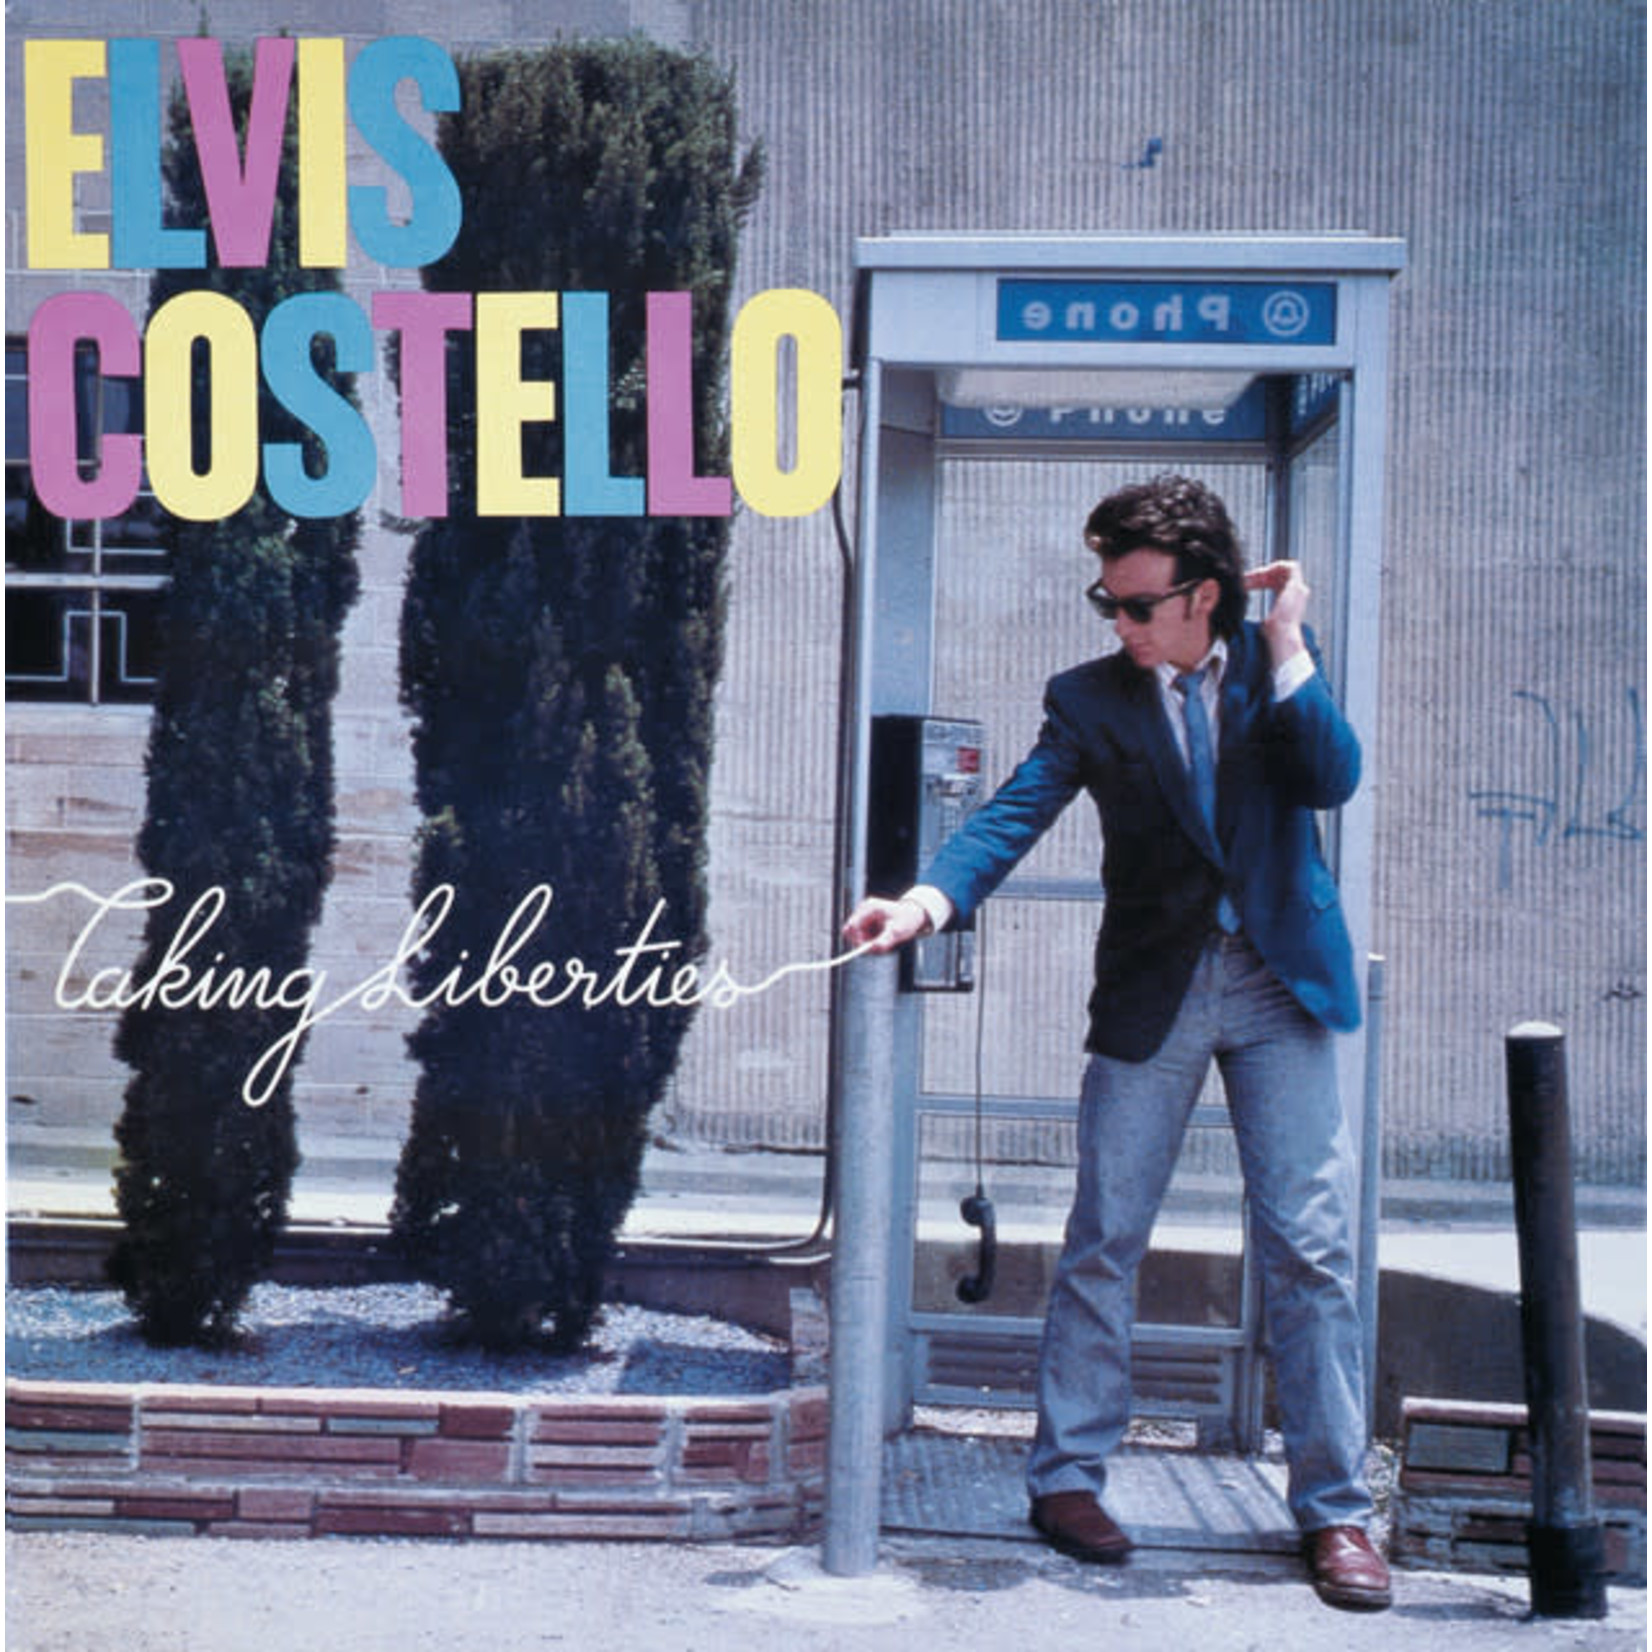 Vinyl Elvis Costello - Taking Liberties.  Final sale